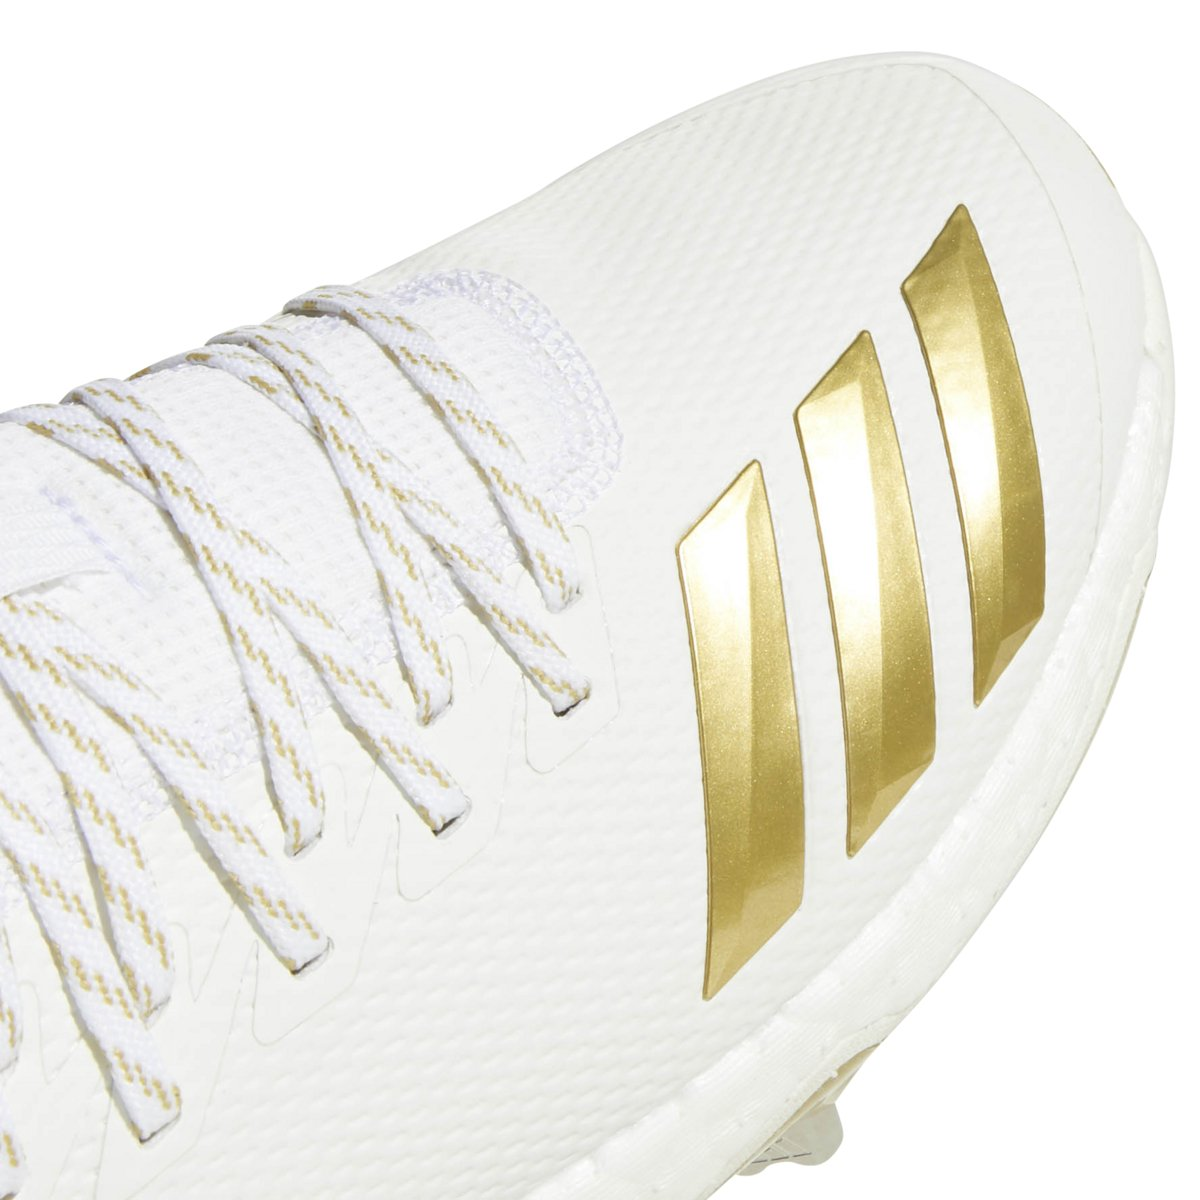 adidas Icon 4 Cleat - Men's Baseball 11 White/Gold Metallic by adidas (Image #5)